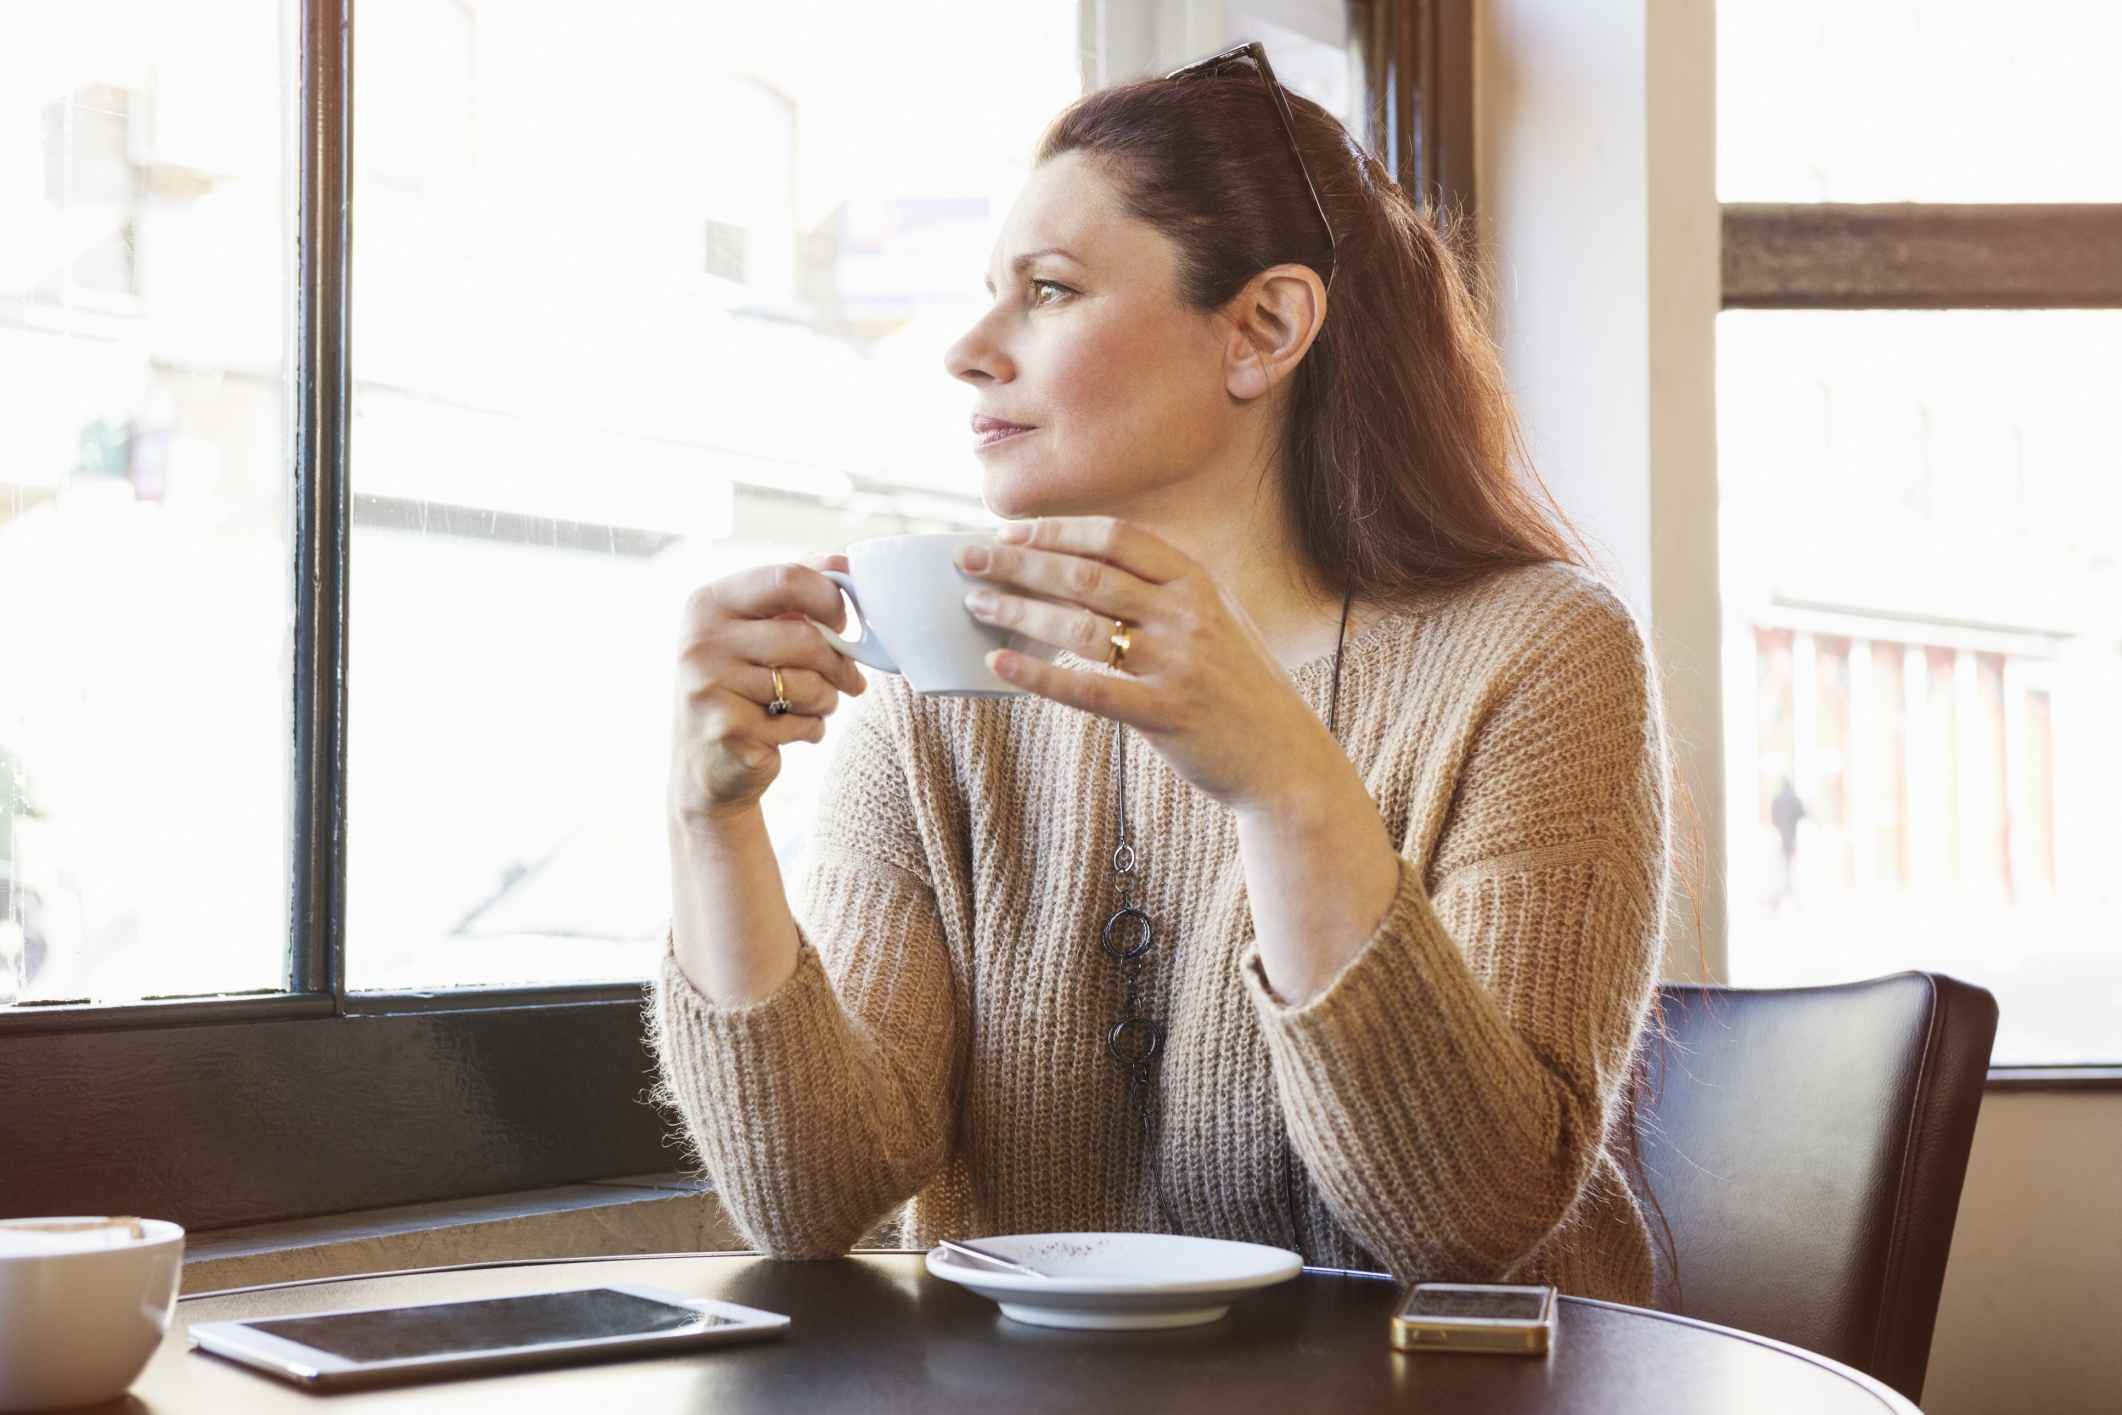 Thinking with coffee: Your explanatory style and thoughts can affect your stress levels.